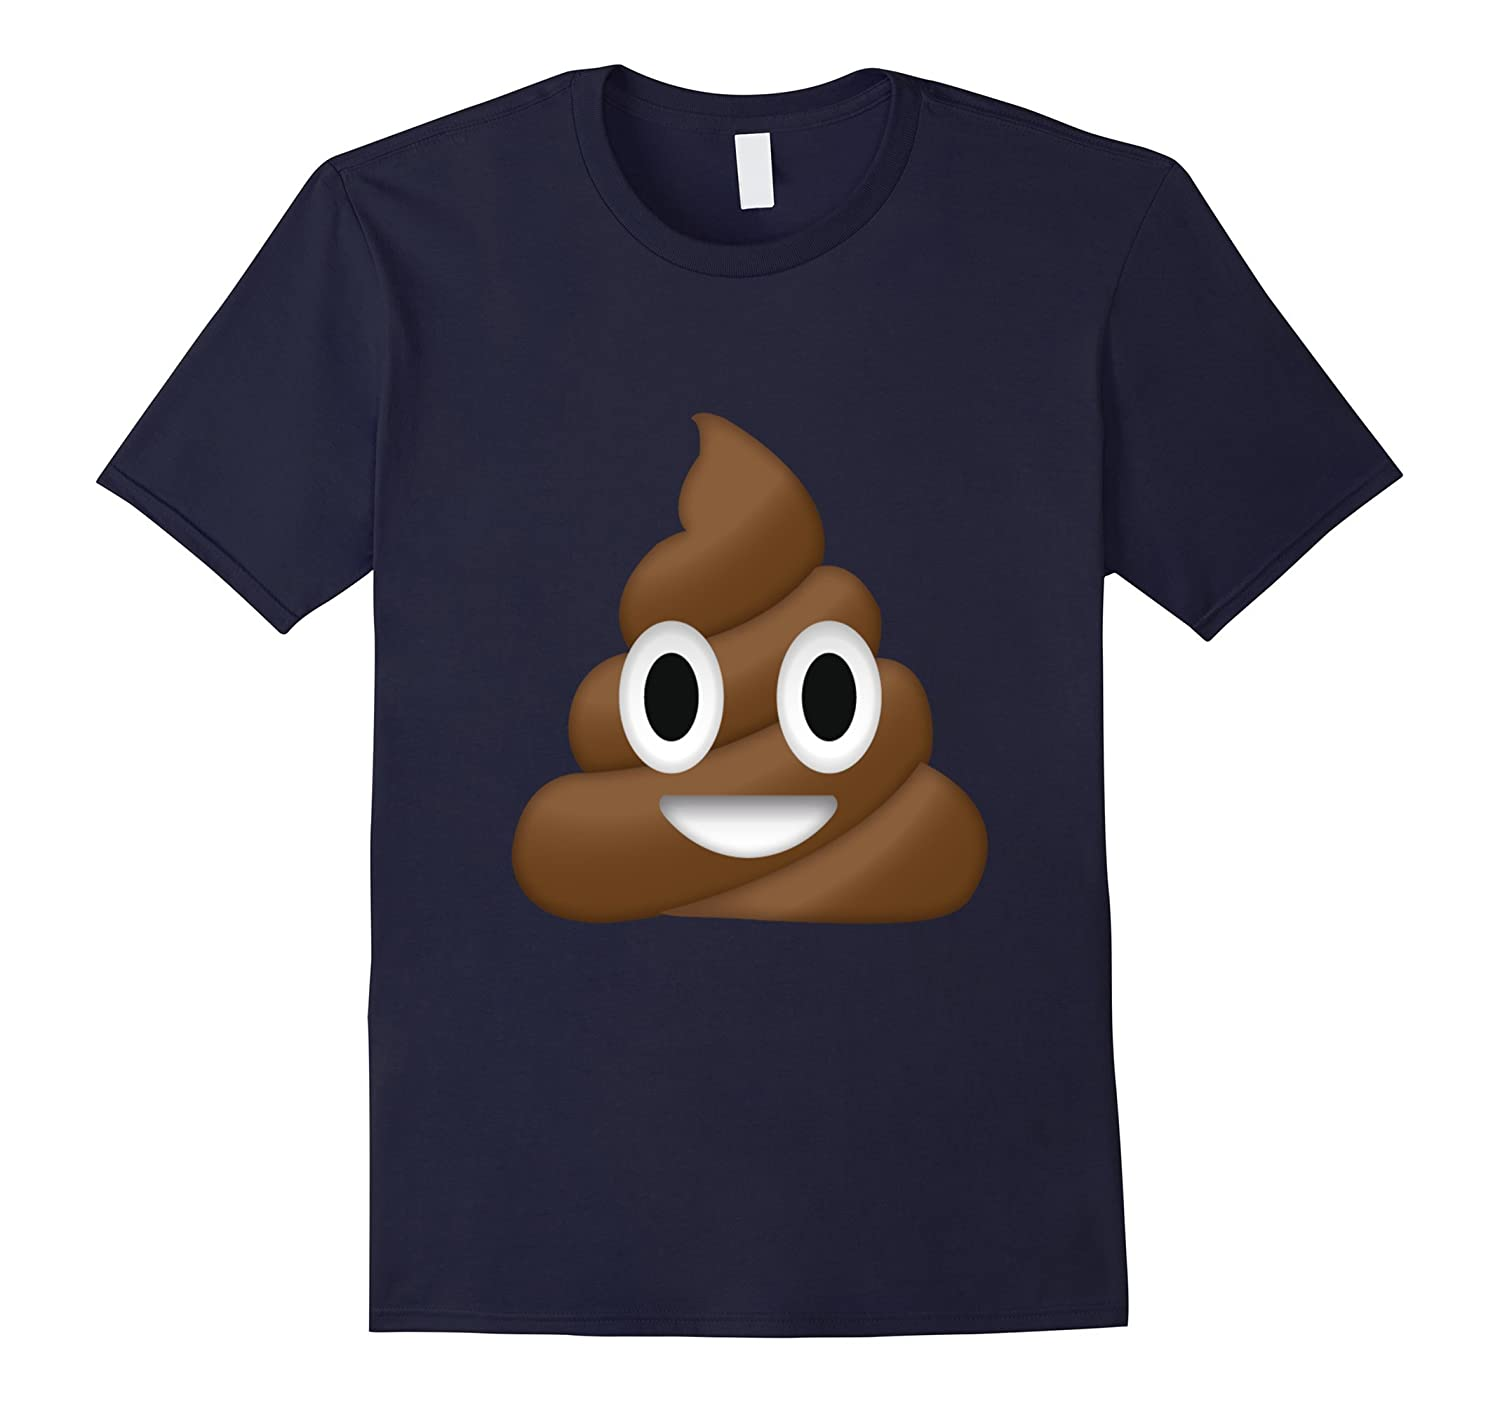 Emoji Poop T Shirt Novelty Funny for Men Women Kids-ah my shirt one gift